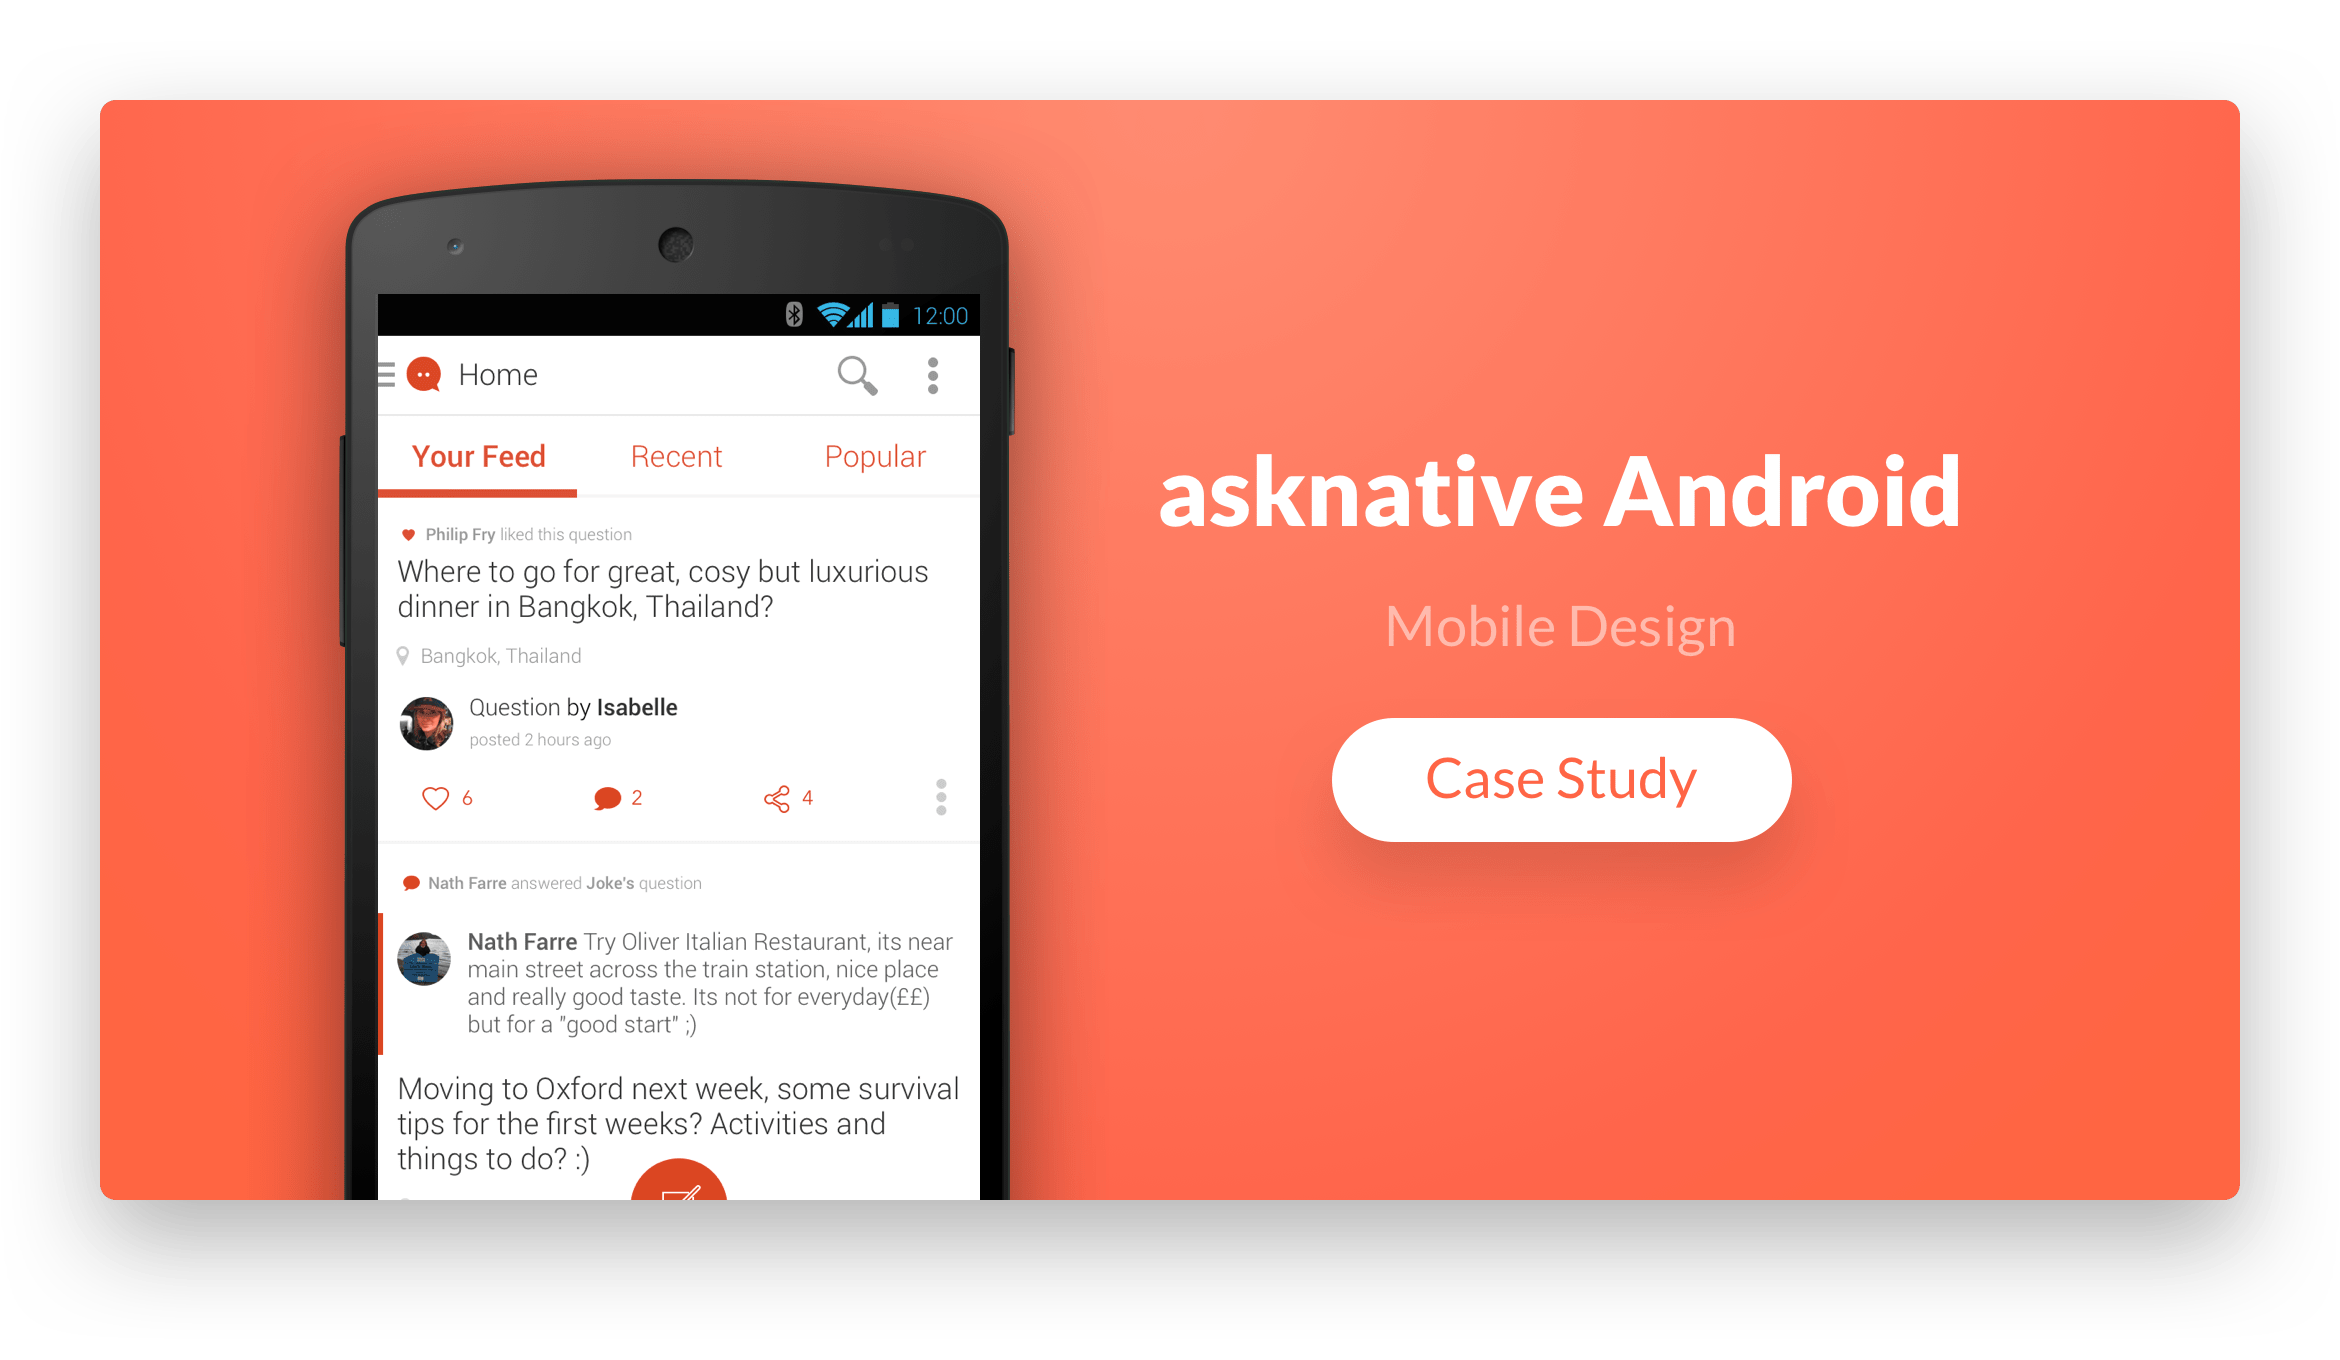 asknative Android